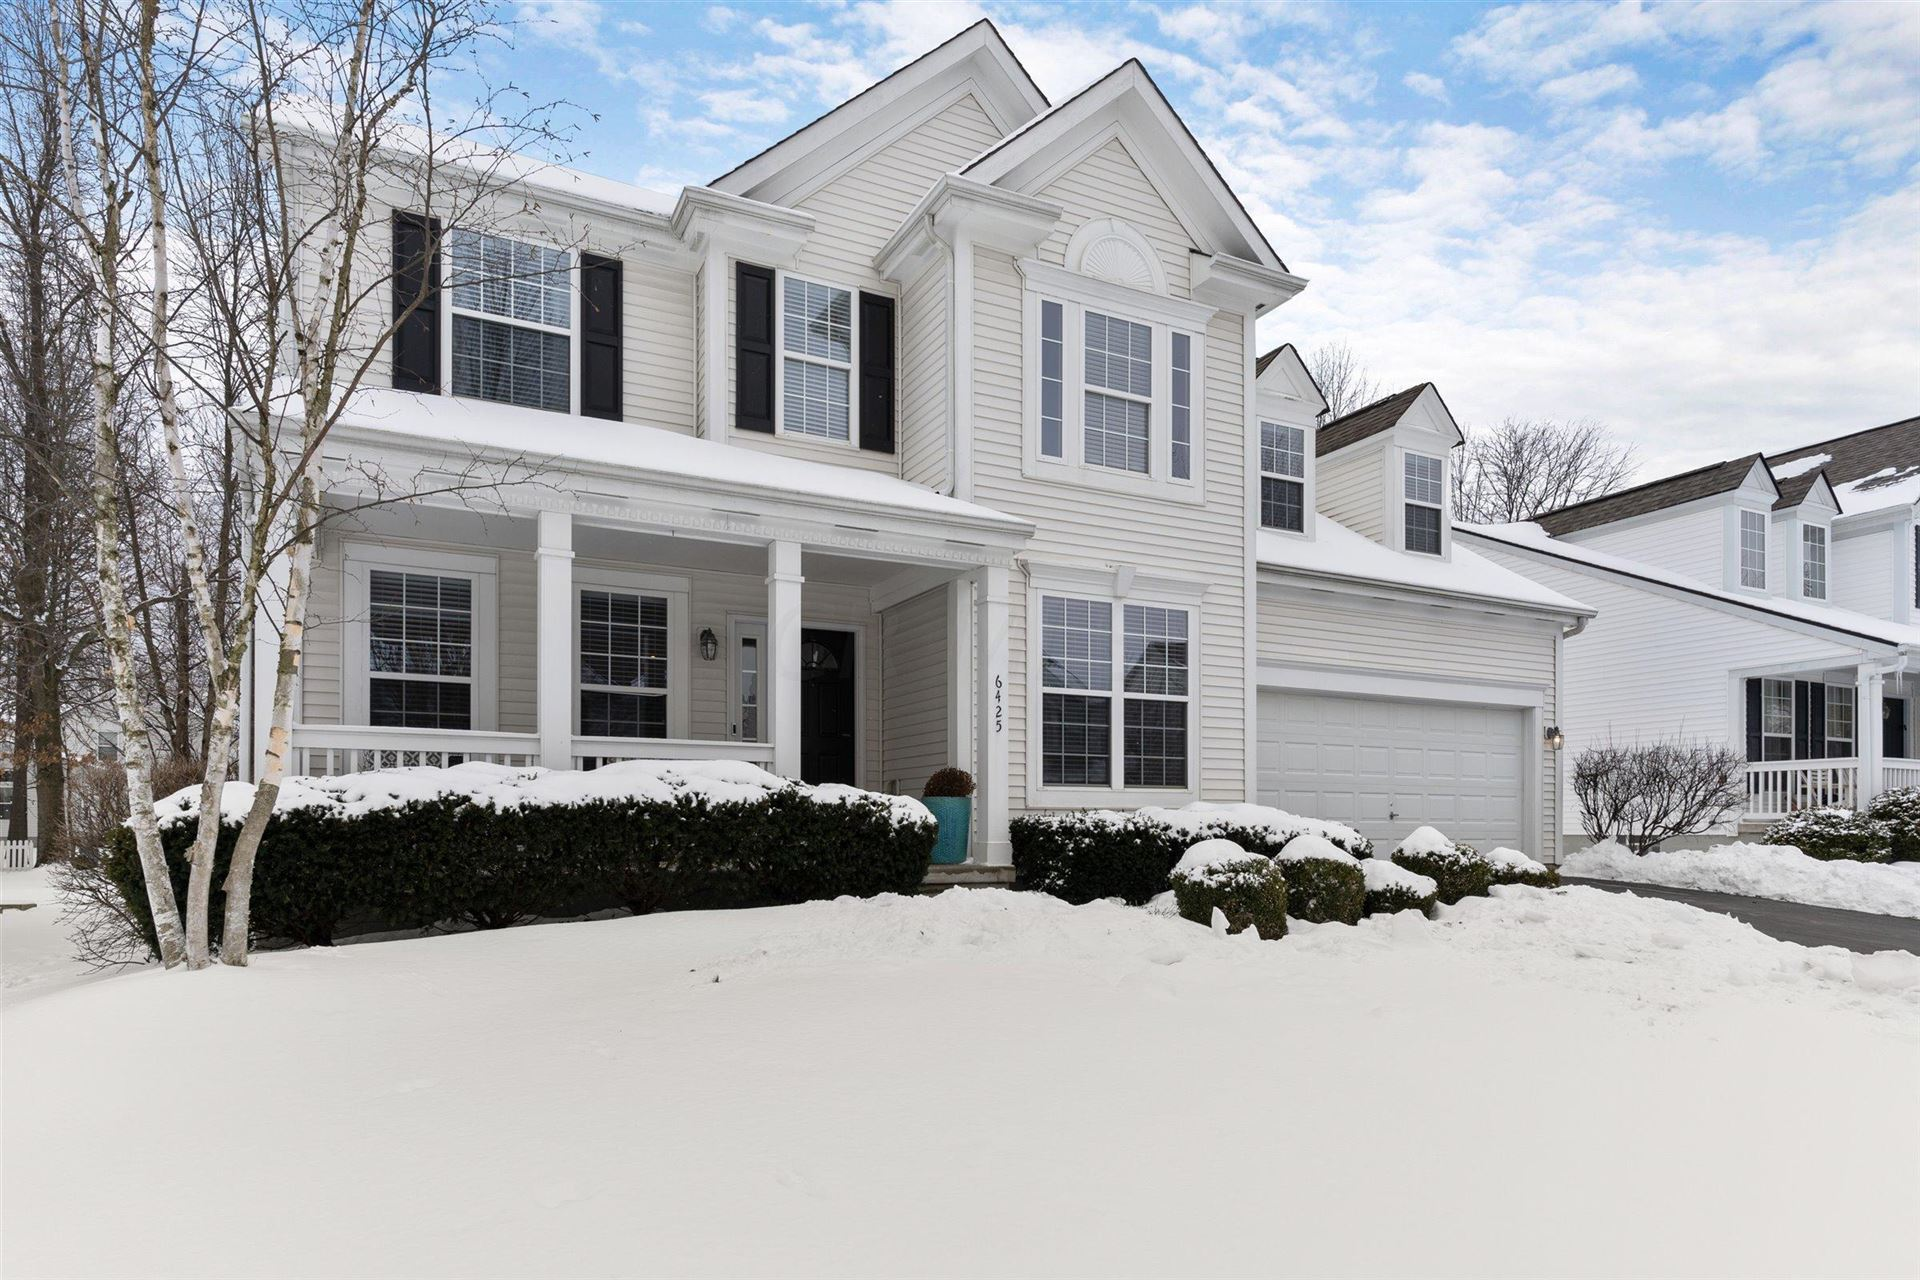 Photo of 6425 Summers Nook Drive, New Albany, OH 43054 (MLS # 221005106)